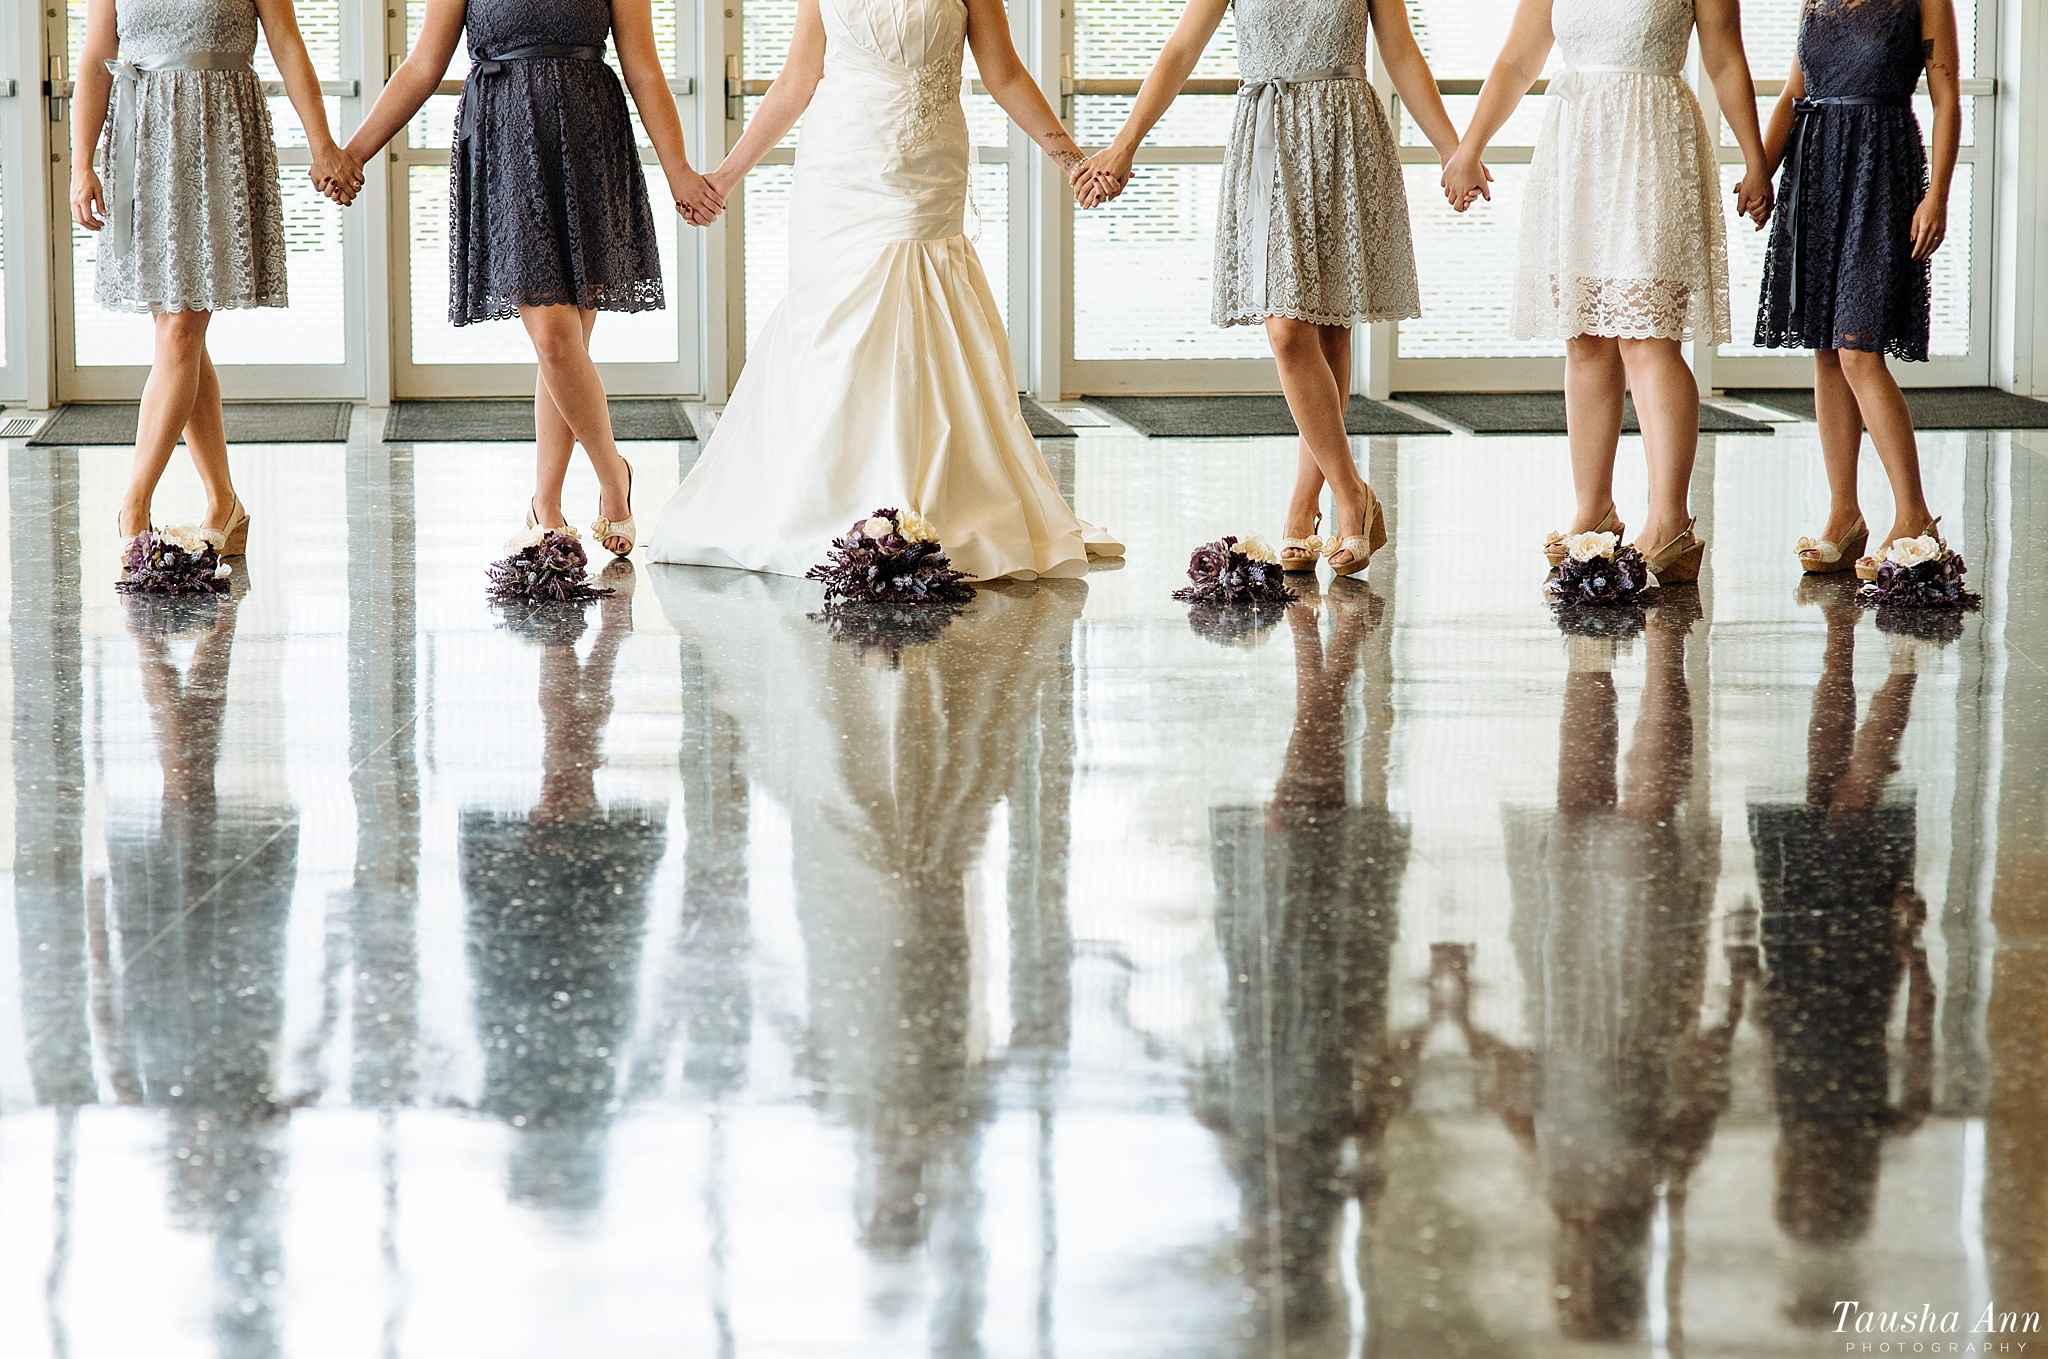 Bride and Bridesmaids holding hands with feet crossed. Showing reflection off of the ground. Grand Wayne Convention Center.